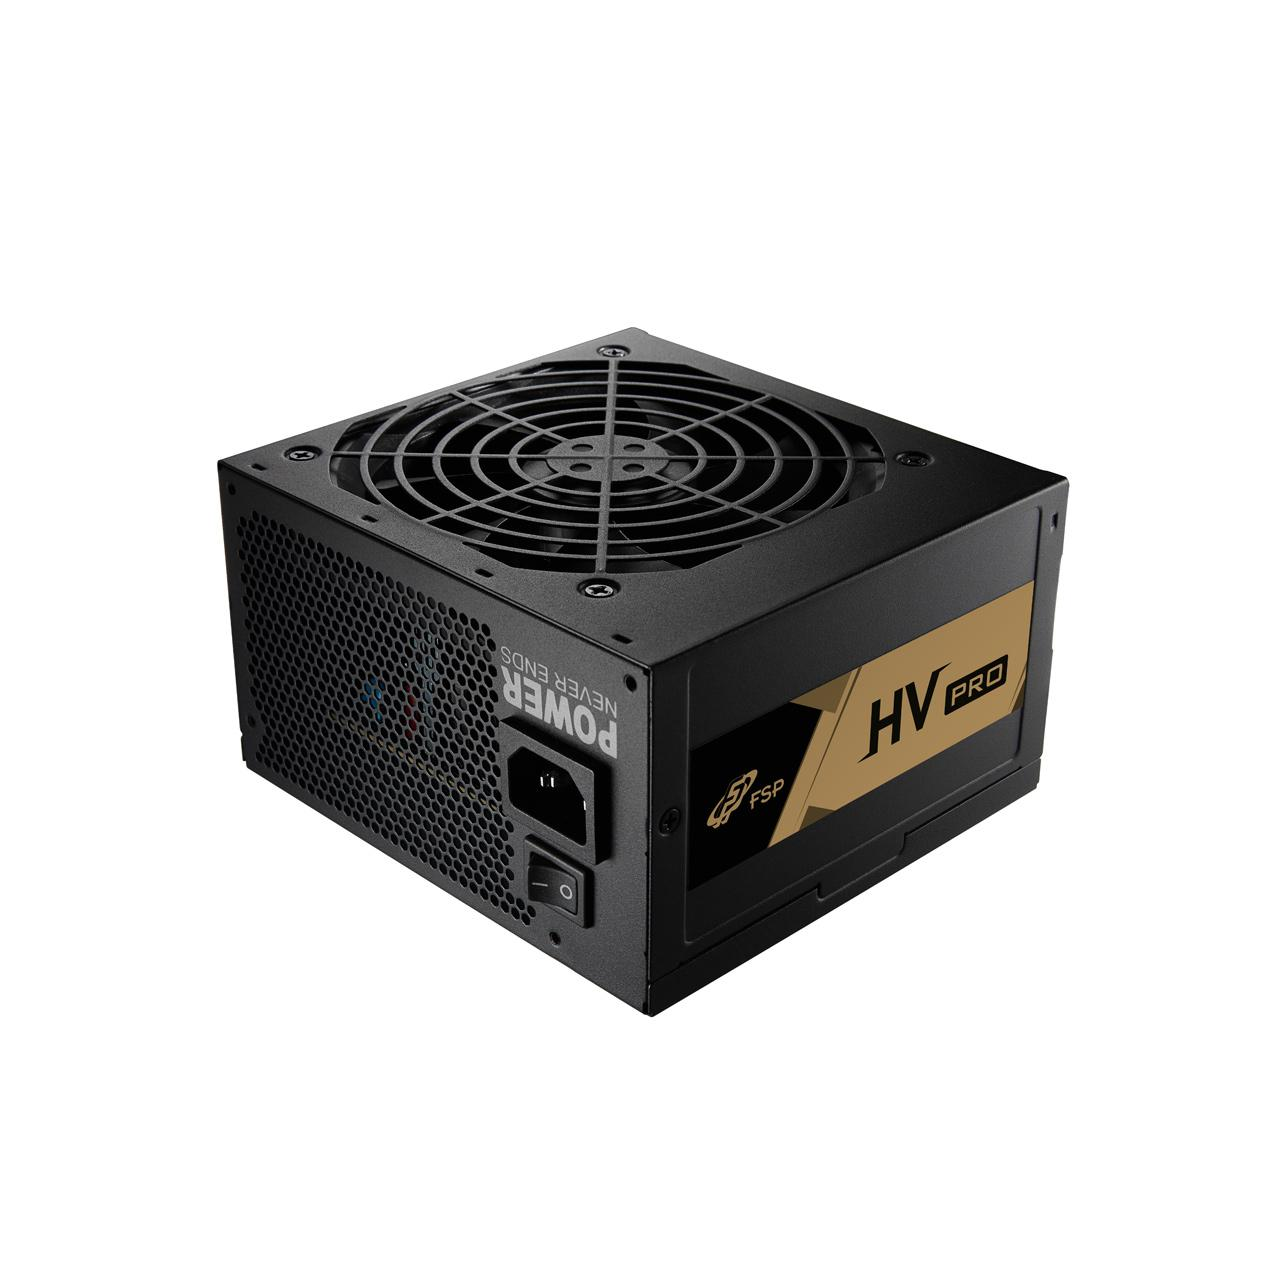 Захранващ блок FSP Group HV PRO 550W, 80+, Sleeve Fan 120mm